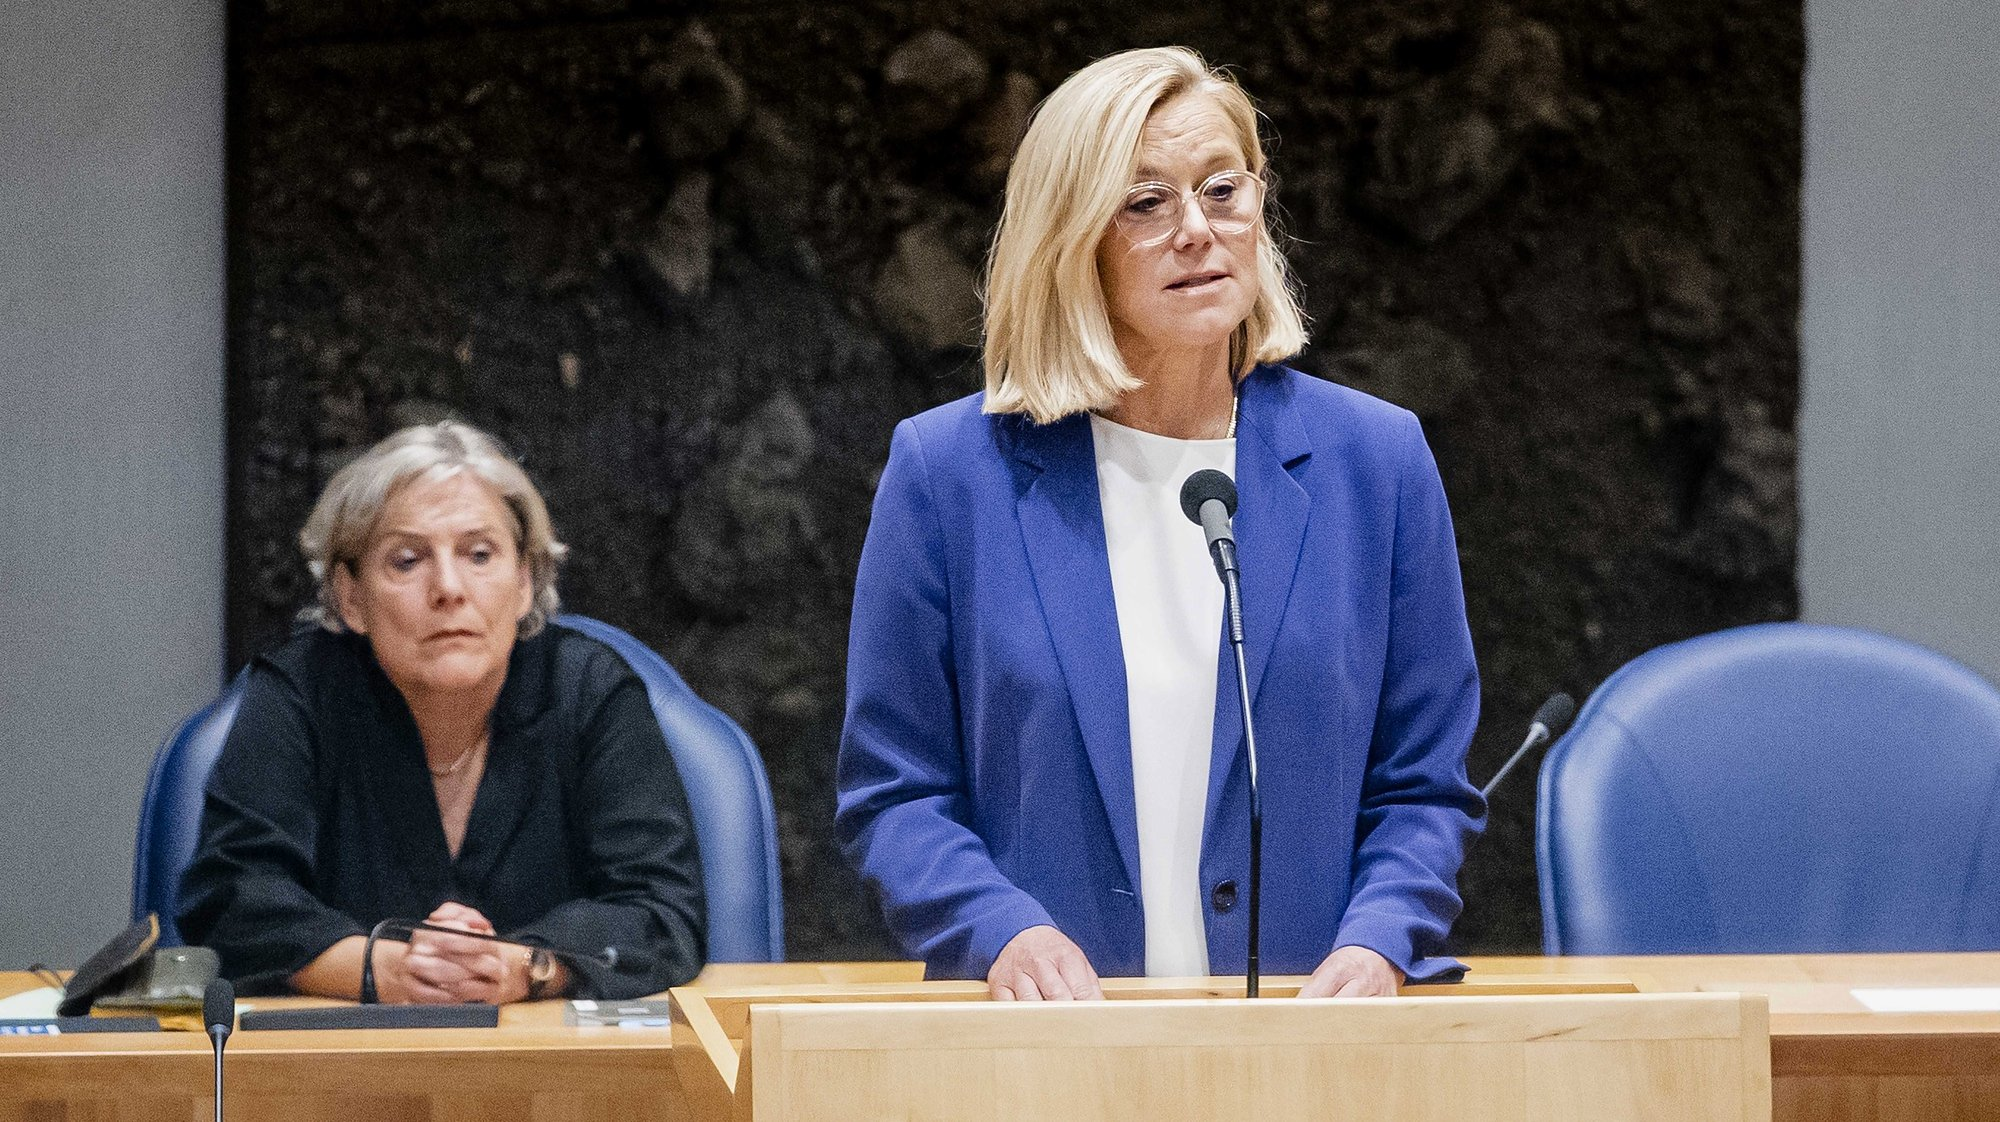 epa09472169 Dutch Foreign Affairs minister Sigrid Kaag, announces her resignation, after MPs voted in favor of a motion of censure against her, in The Hague, Netherlands, 16 September 2021. The House of Representatives submitted a motion of censure against Kaag because of the chaotic evacuation from Afghanistan.  EPA/Sem van der Wal